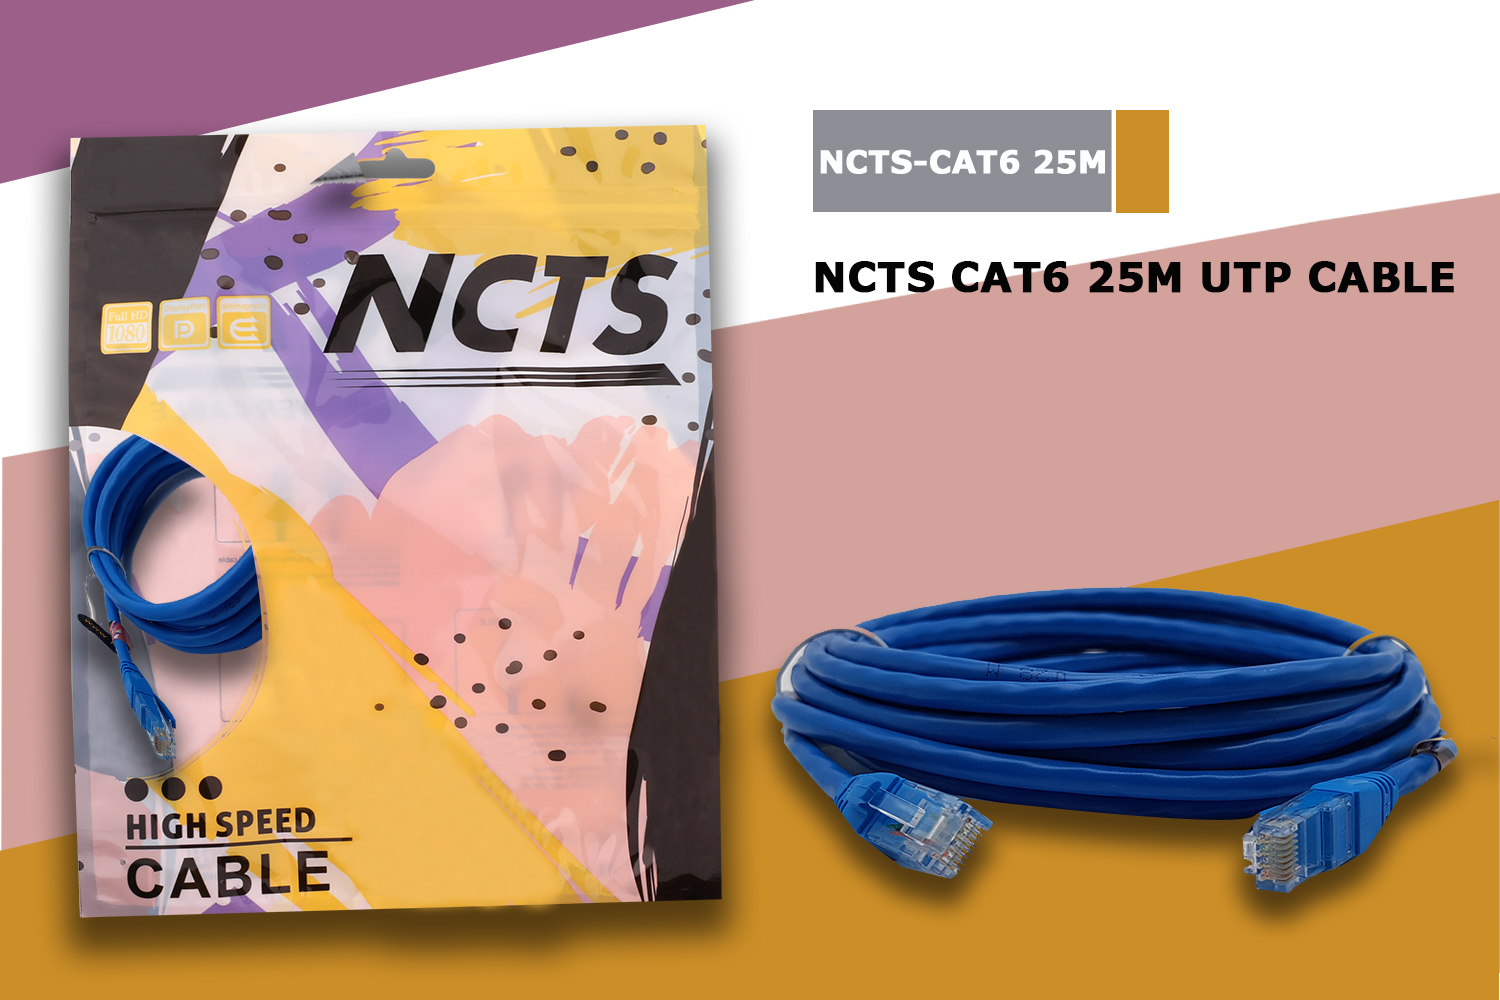 NCTS CAT6 UTP CABLE 25M